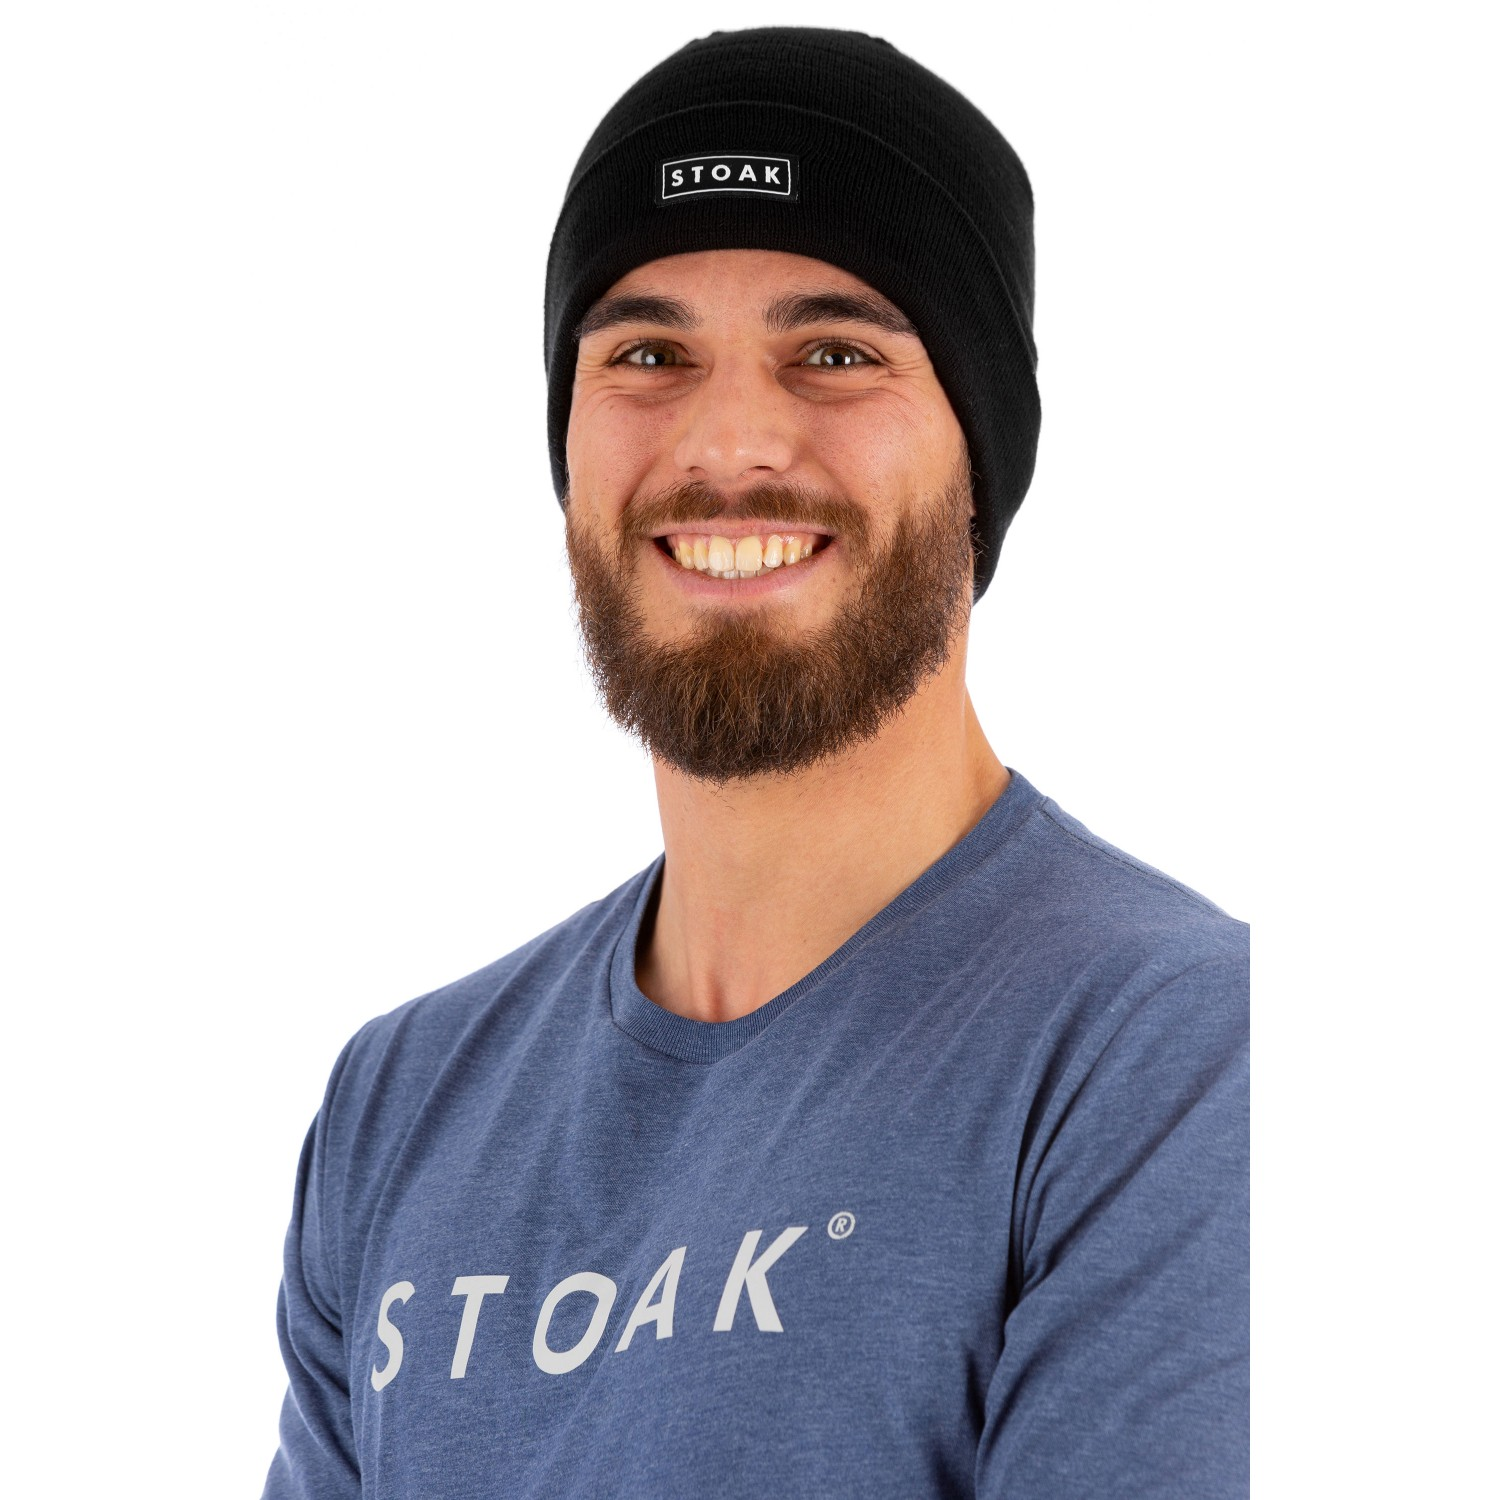 STOAK CARBON Beanie ORGANIC COTTON